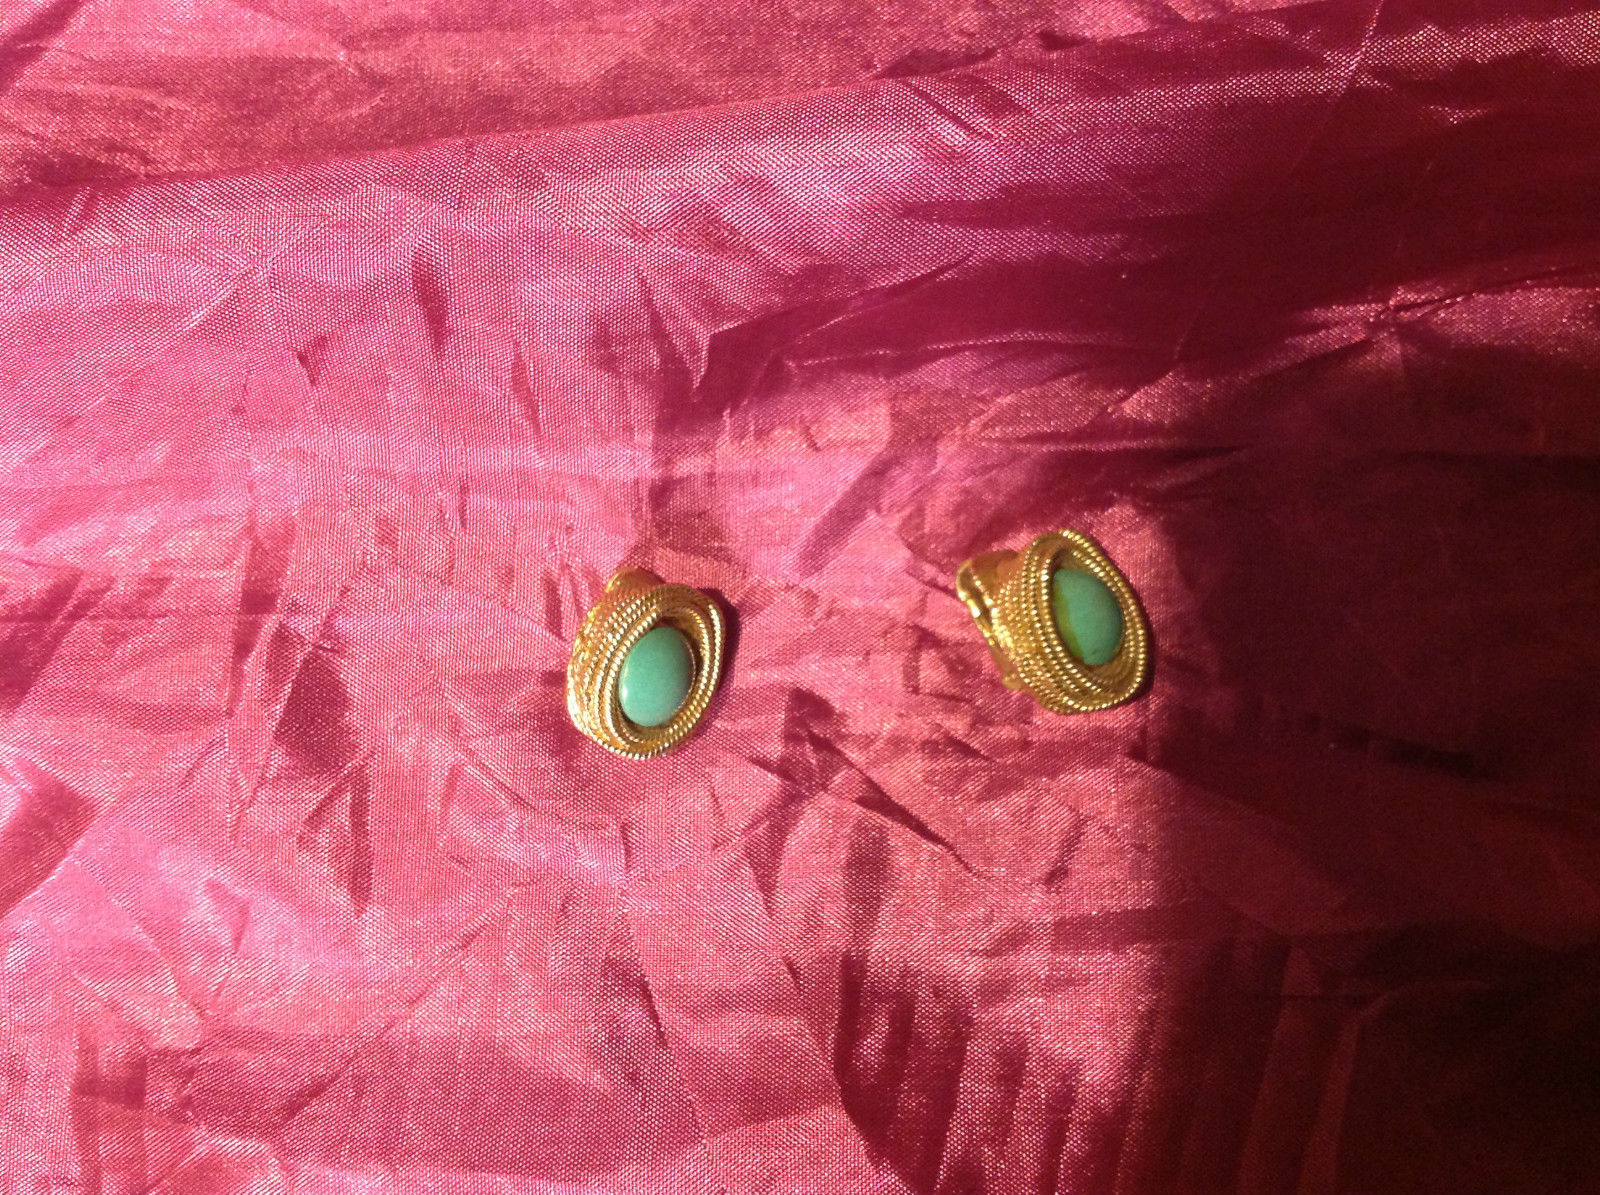 Very pretty Gold Green Emerald Clip-on Earrings 1.5 Inches